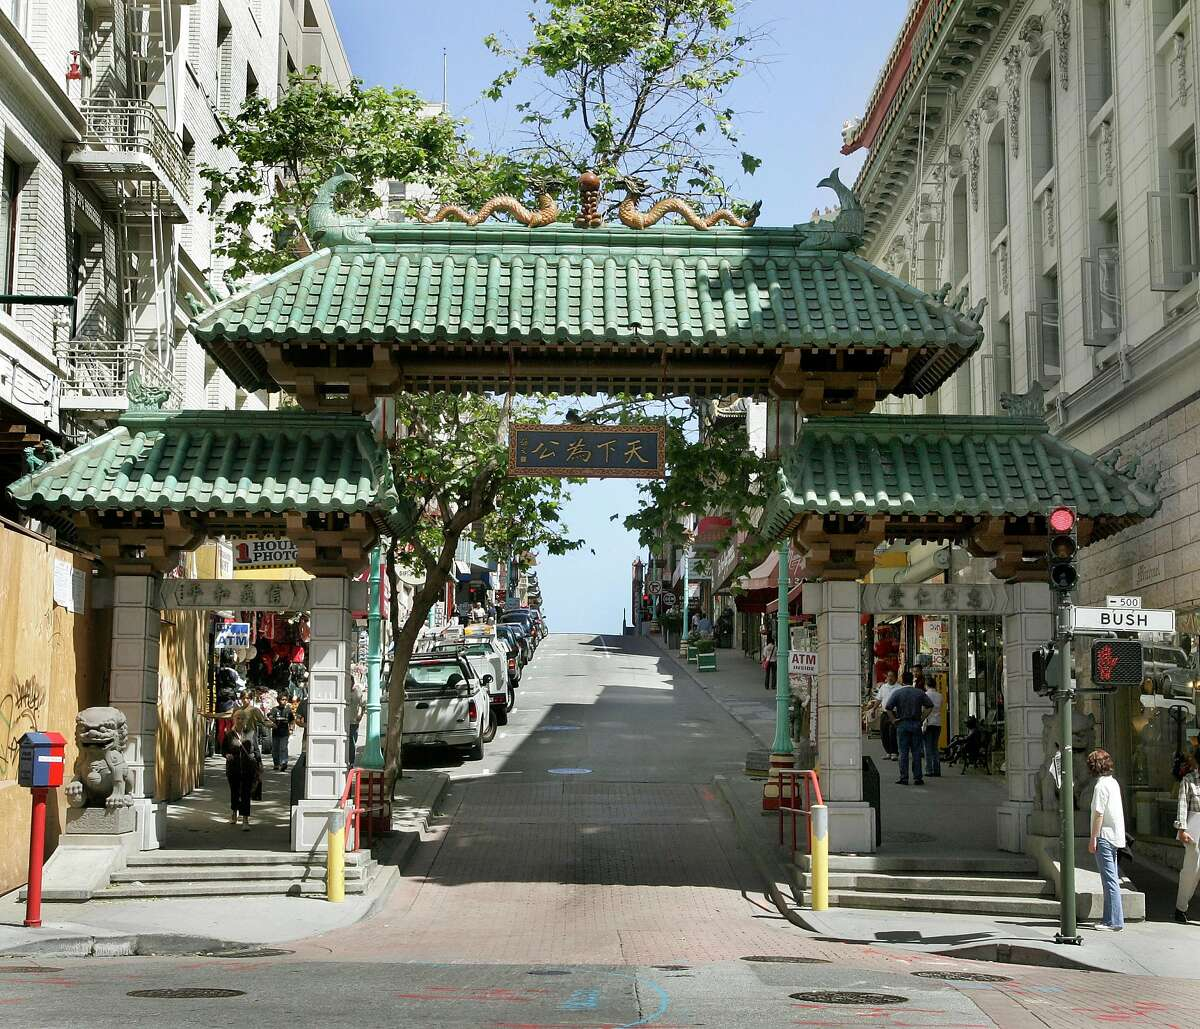 SFGATE_075_fl.jpg The city wants to erect a gate at the other end of Chinatown - current gate (at Grant and Bush Street in photo) and of the area where the proposed gate would be - Grant at Broadway. 5/25/05 San Francisco CA Frederic Larson The San Francisco Chronicle This gate at the entrance to Chinatown, on Grant Avenue at Bush Street, may eventually be matched by a gate at the other end of Grant, at Broadway.